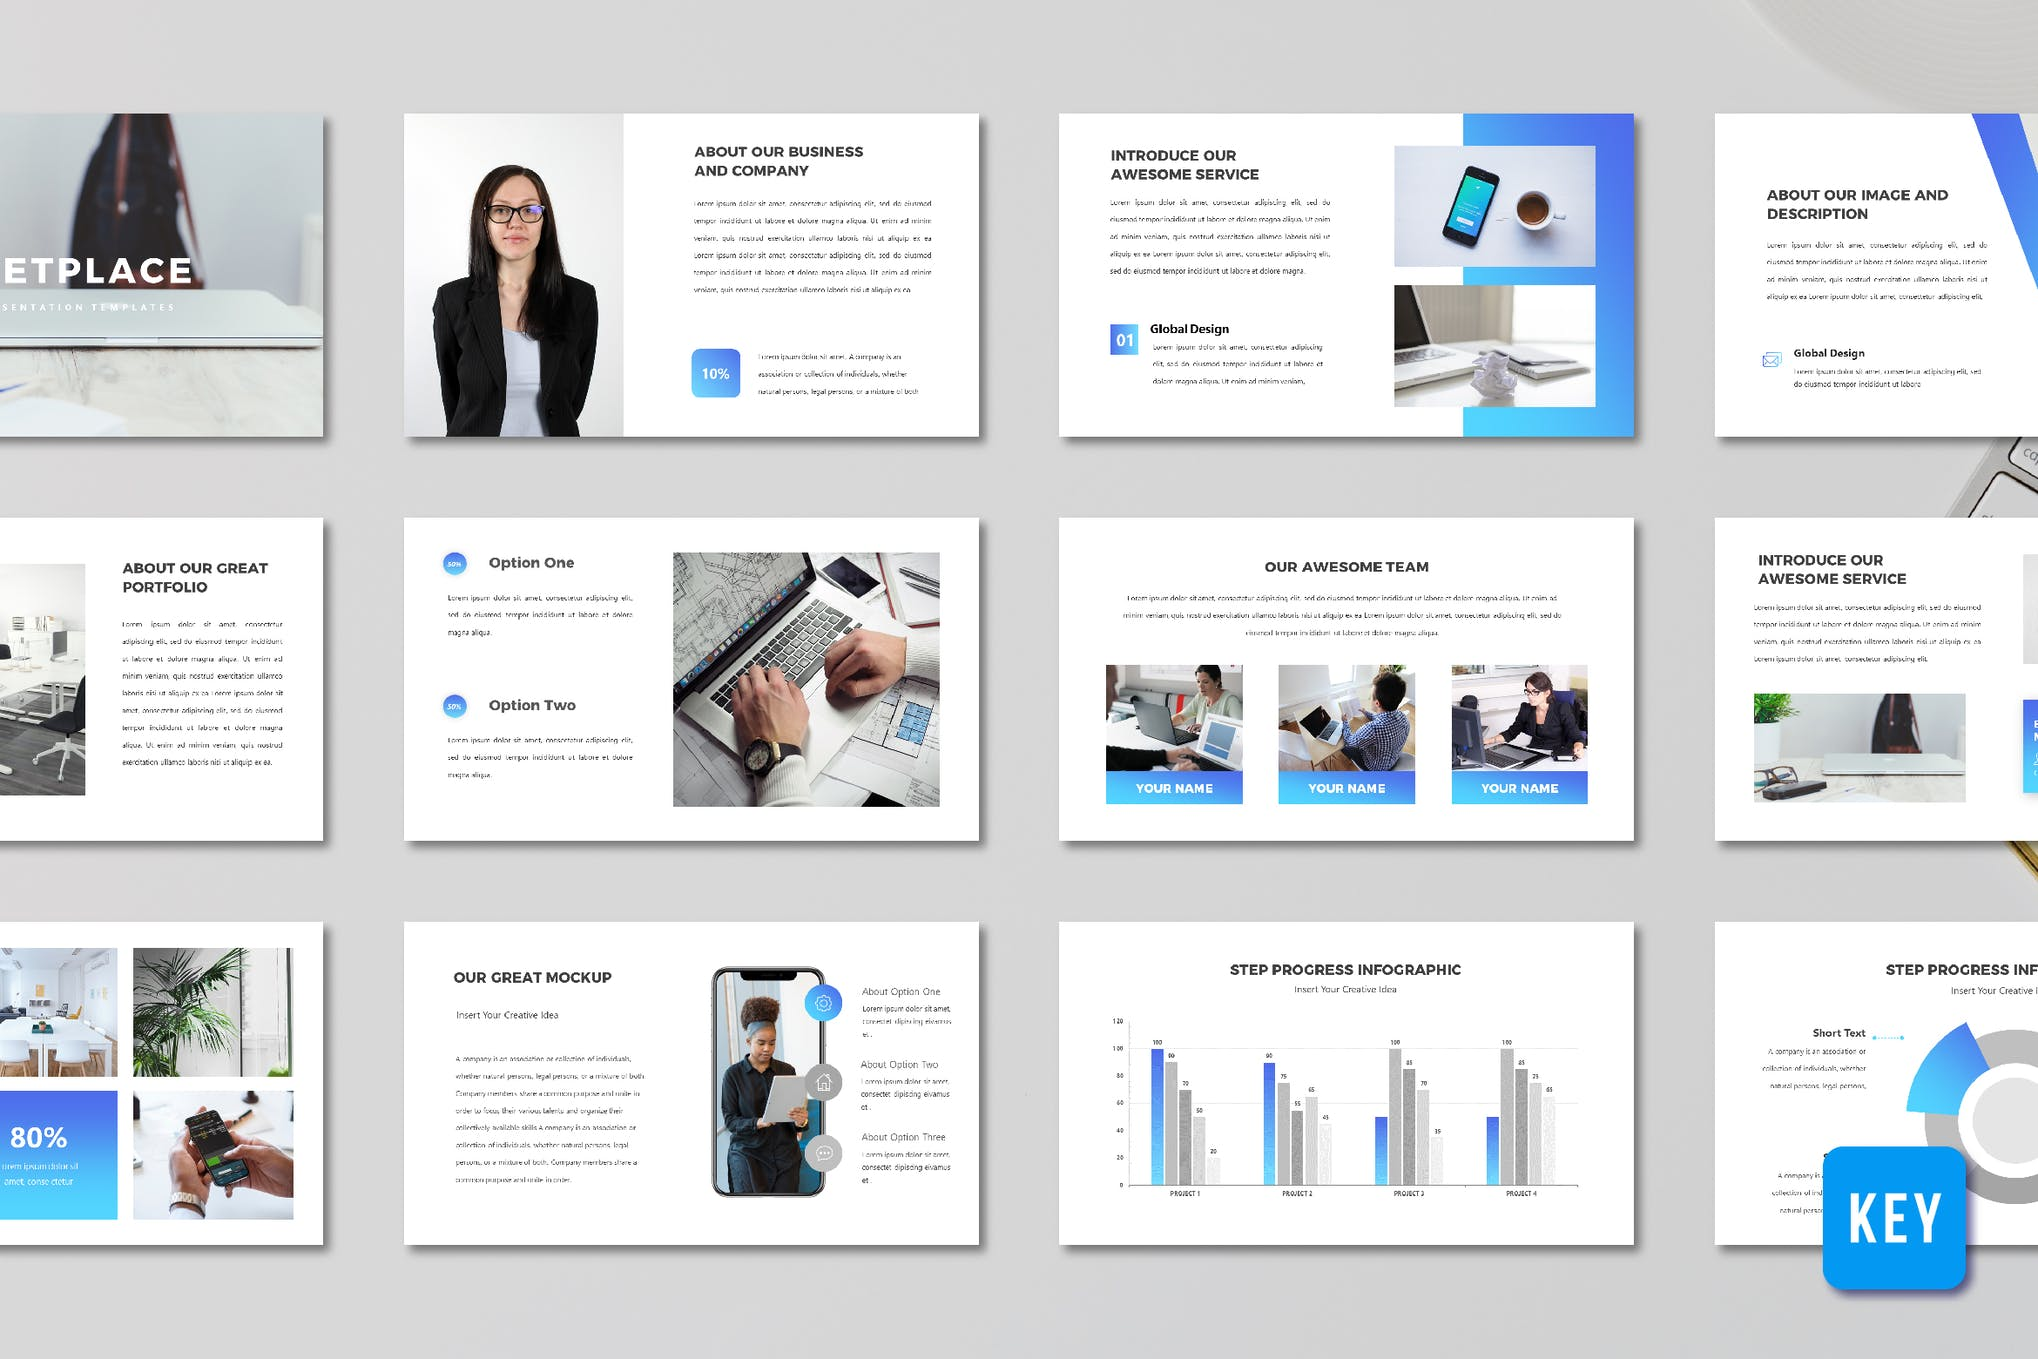 Business Proposal Powerpoint Template from elements-cover-images-0.imgix.net